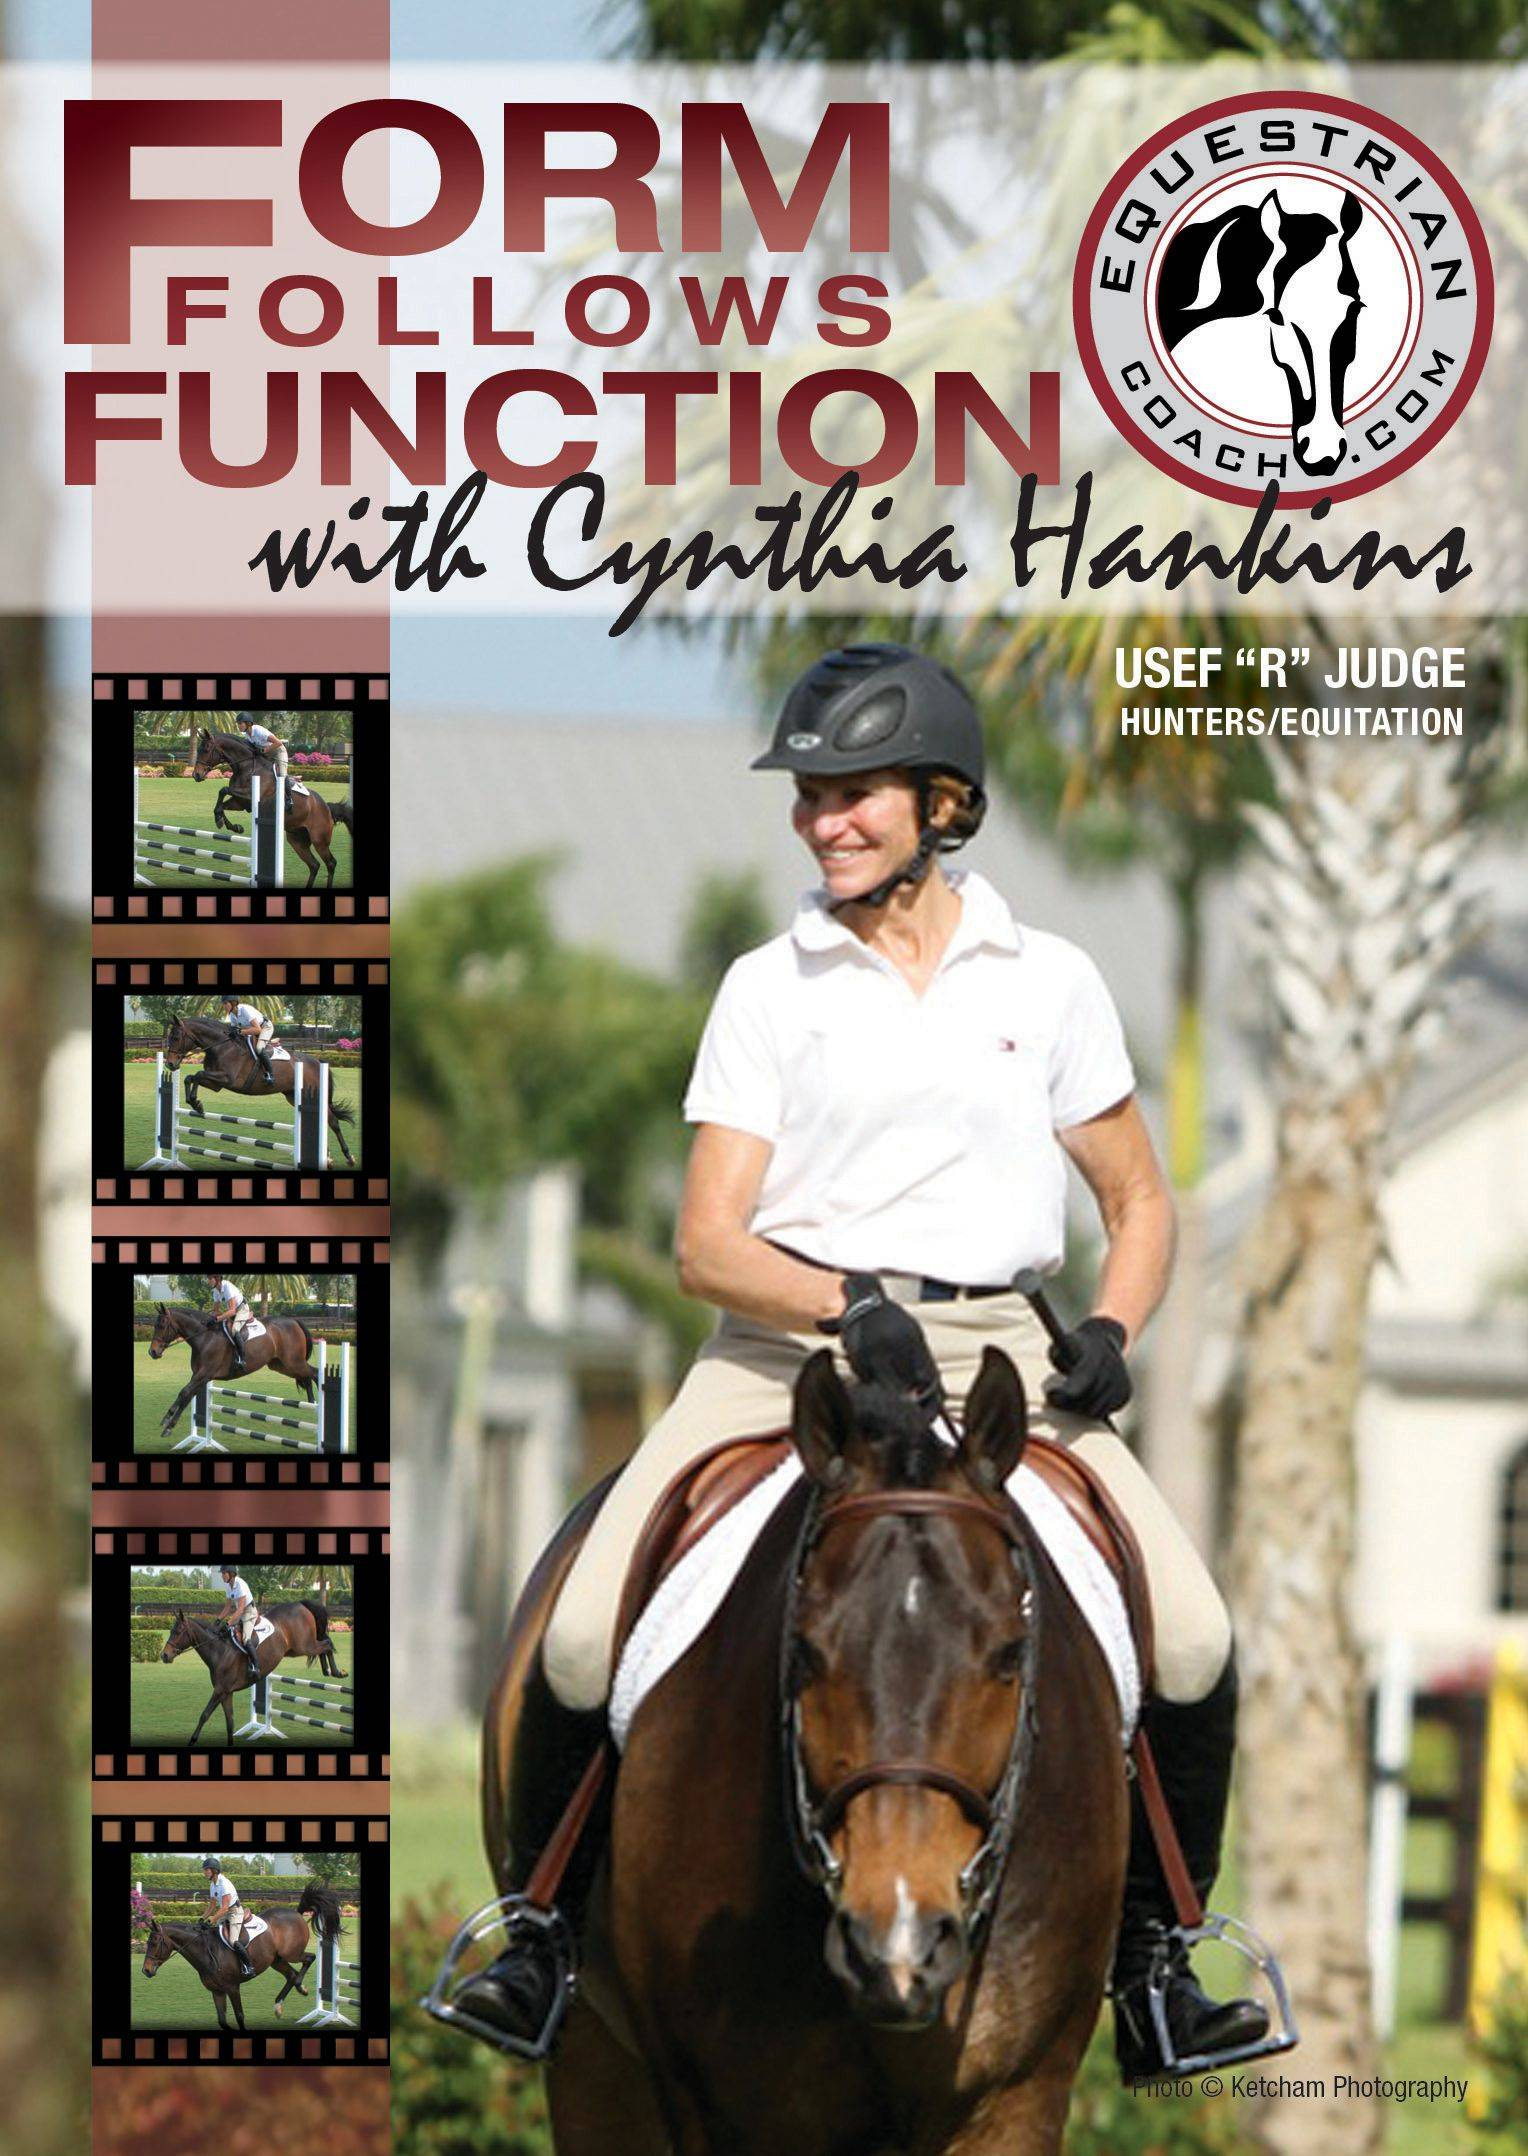 Form Follows Function DVD with Cythnthai Hankins